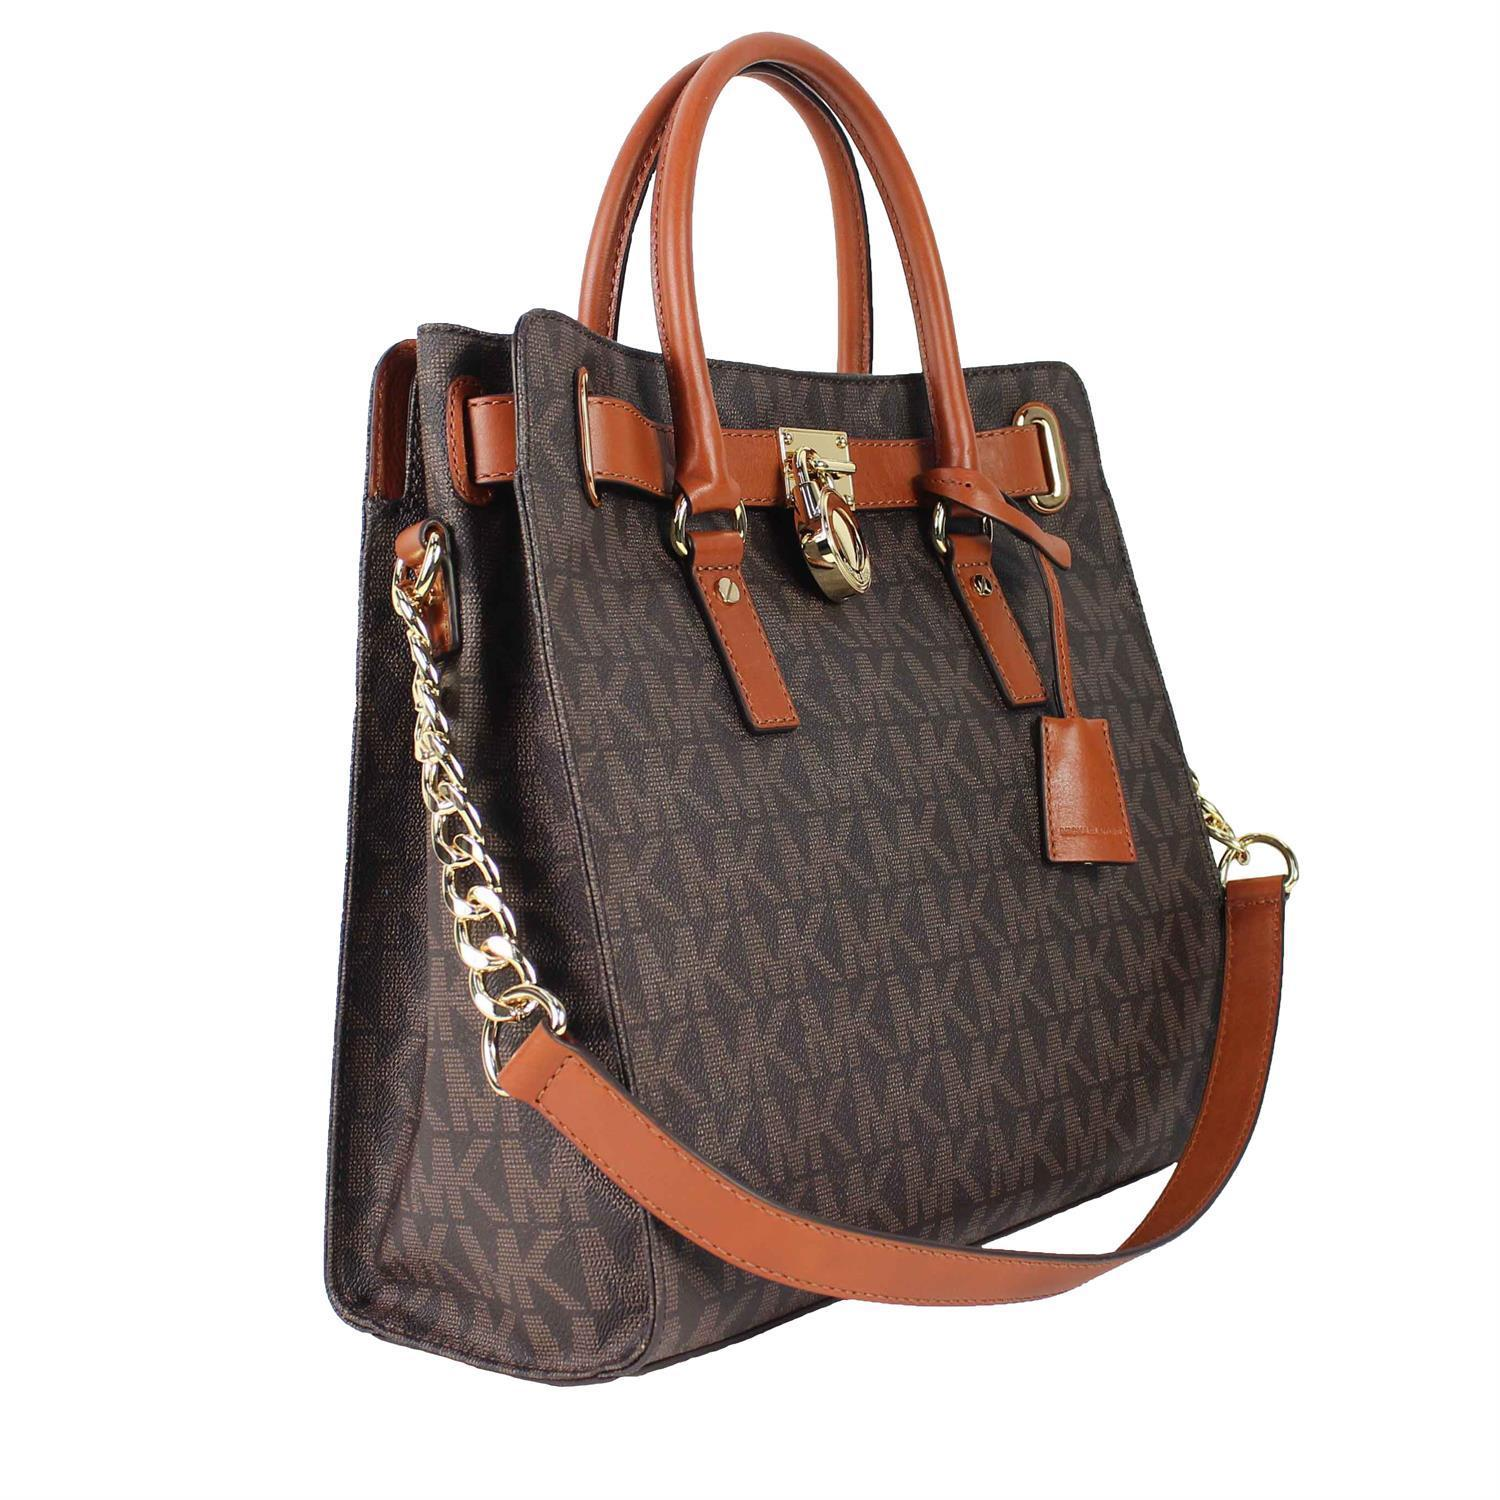 59286a9c57b867 Shop Michael Kors Hamilton Large North/South Brown Logo Tote Bag - Free  Shipping Today - Overstock - 8911861